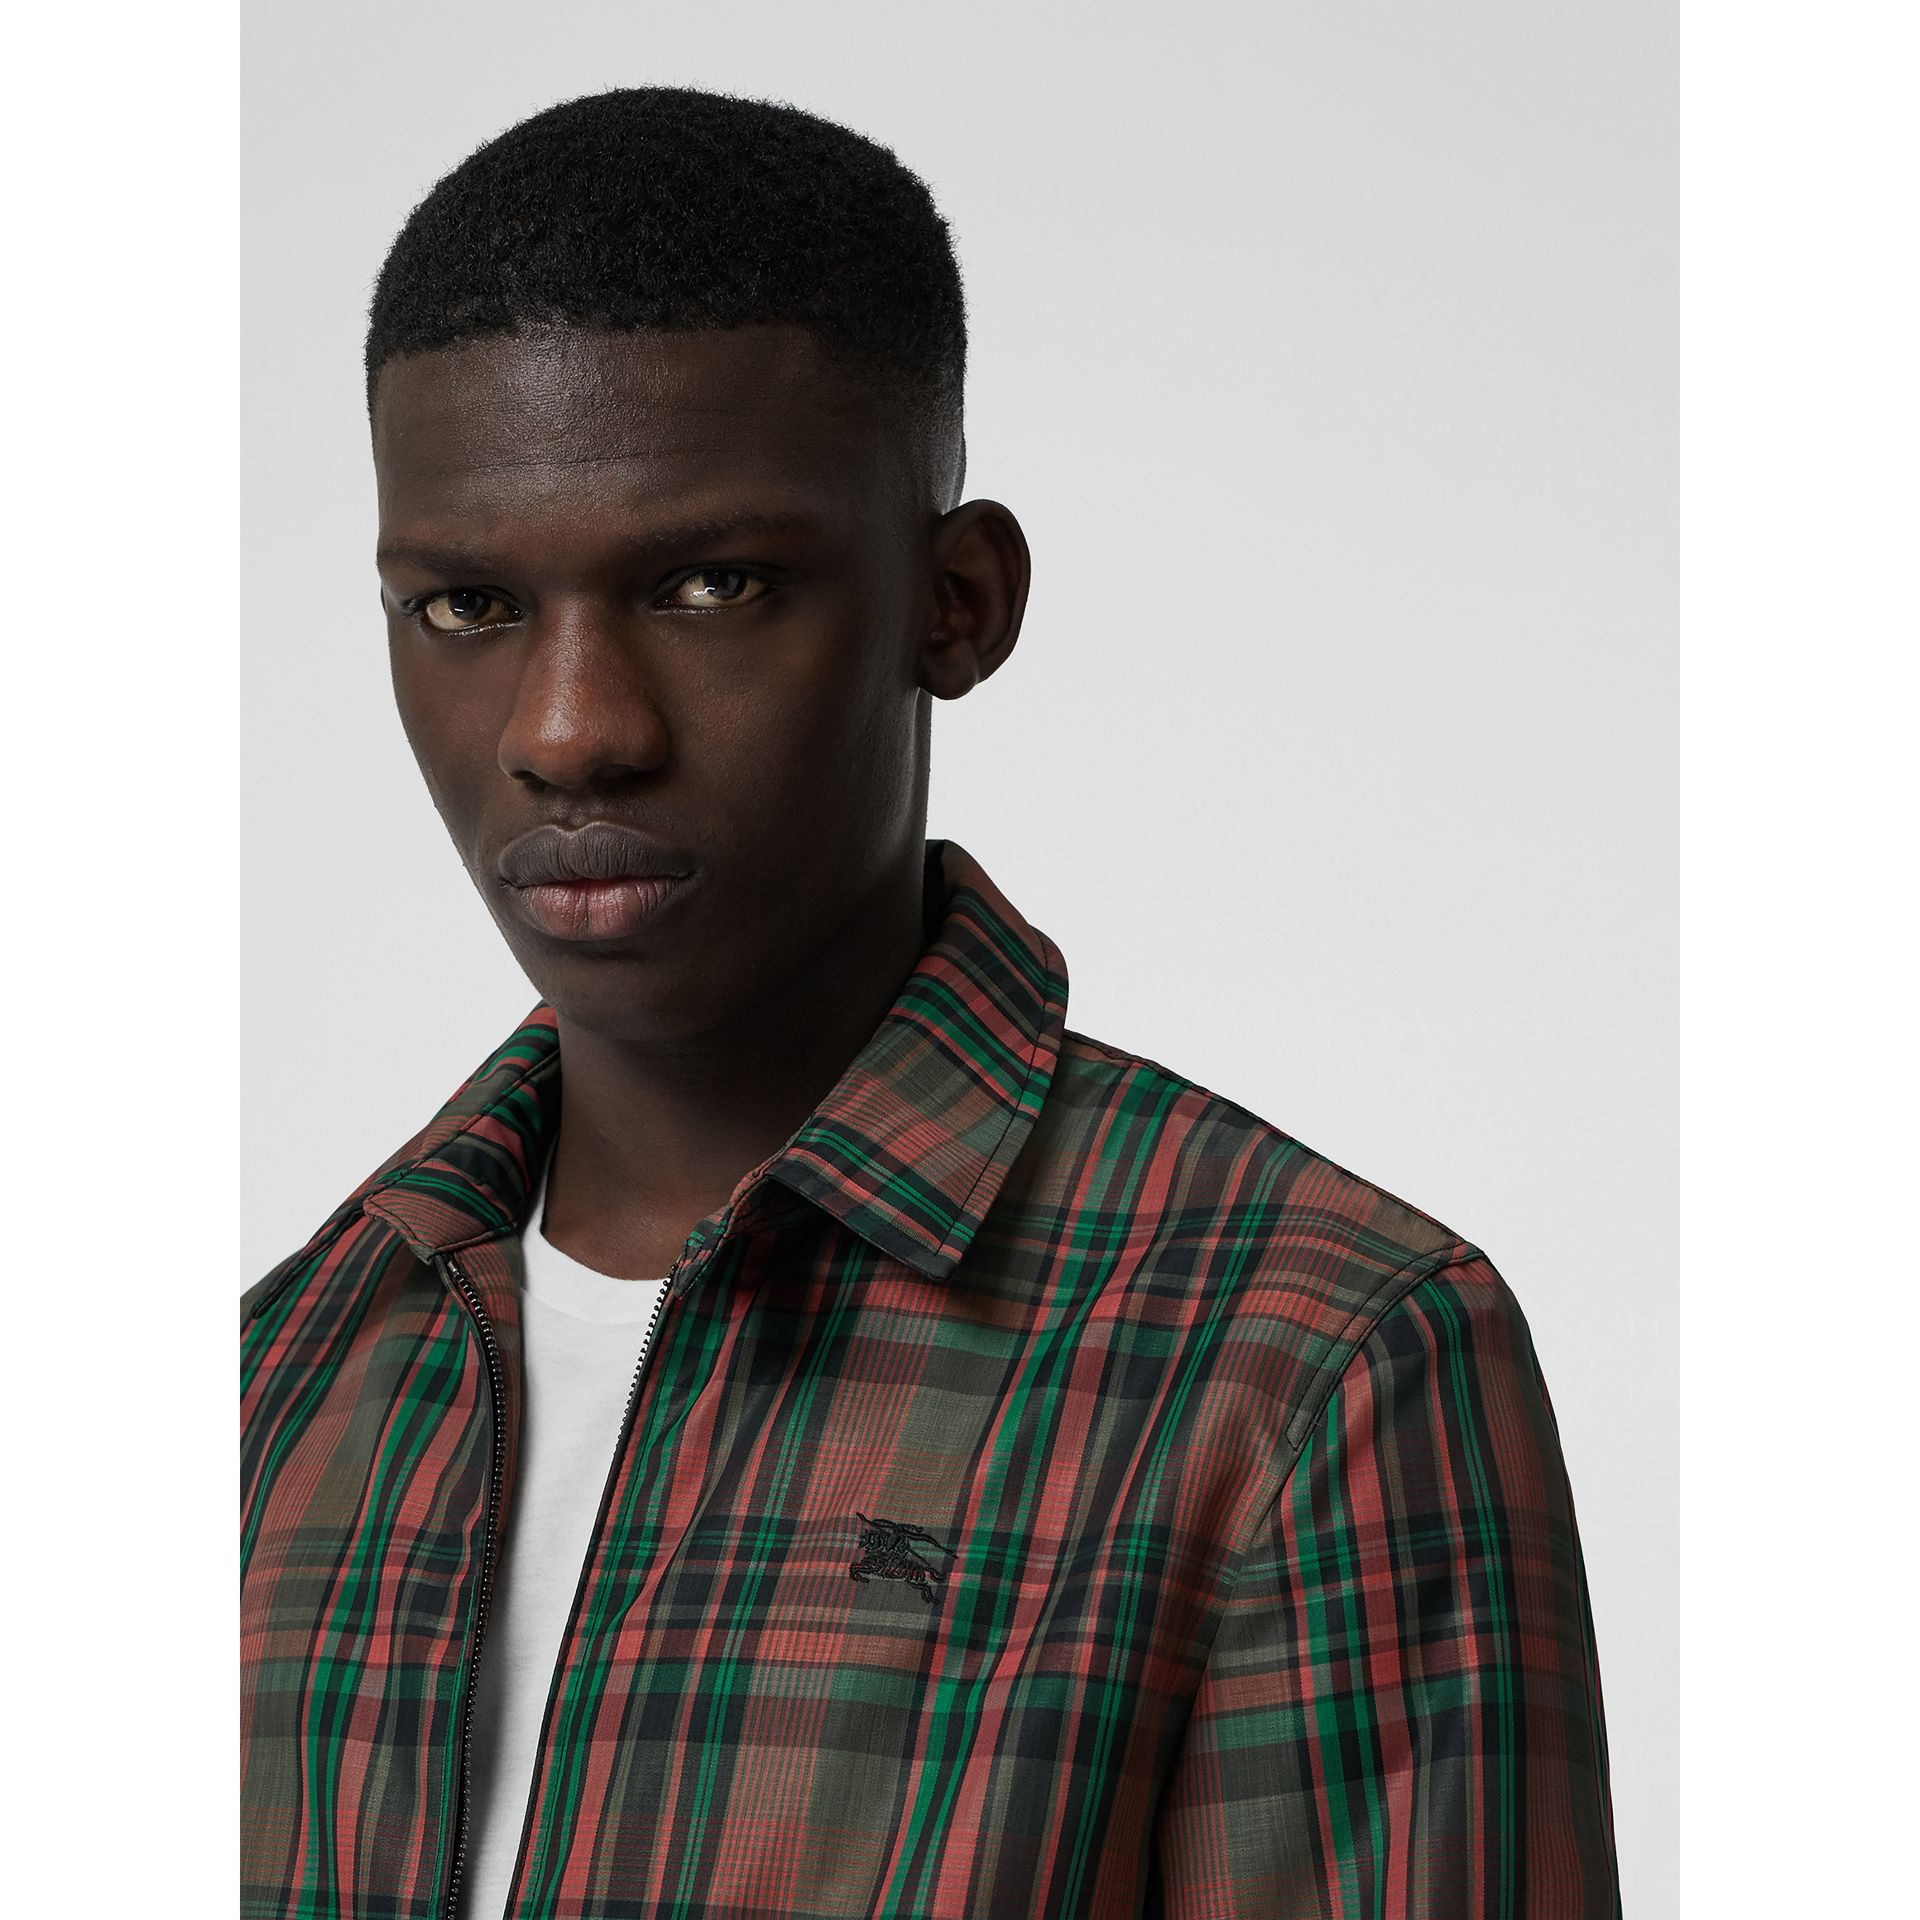 Veste Harrington à motif check avec doublure molletonnée (Rouge Feuille Morte) - Homme | Burberry - photo de la galerie 1